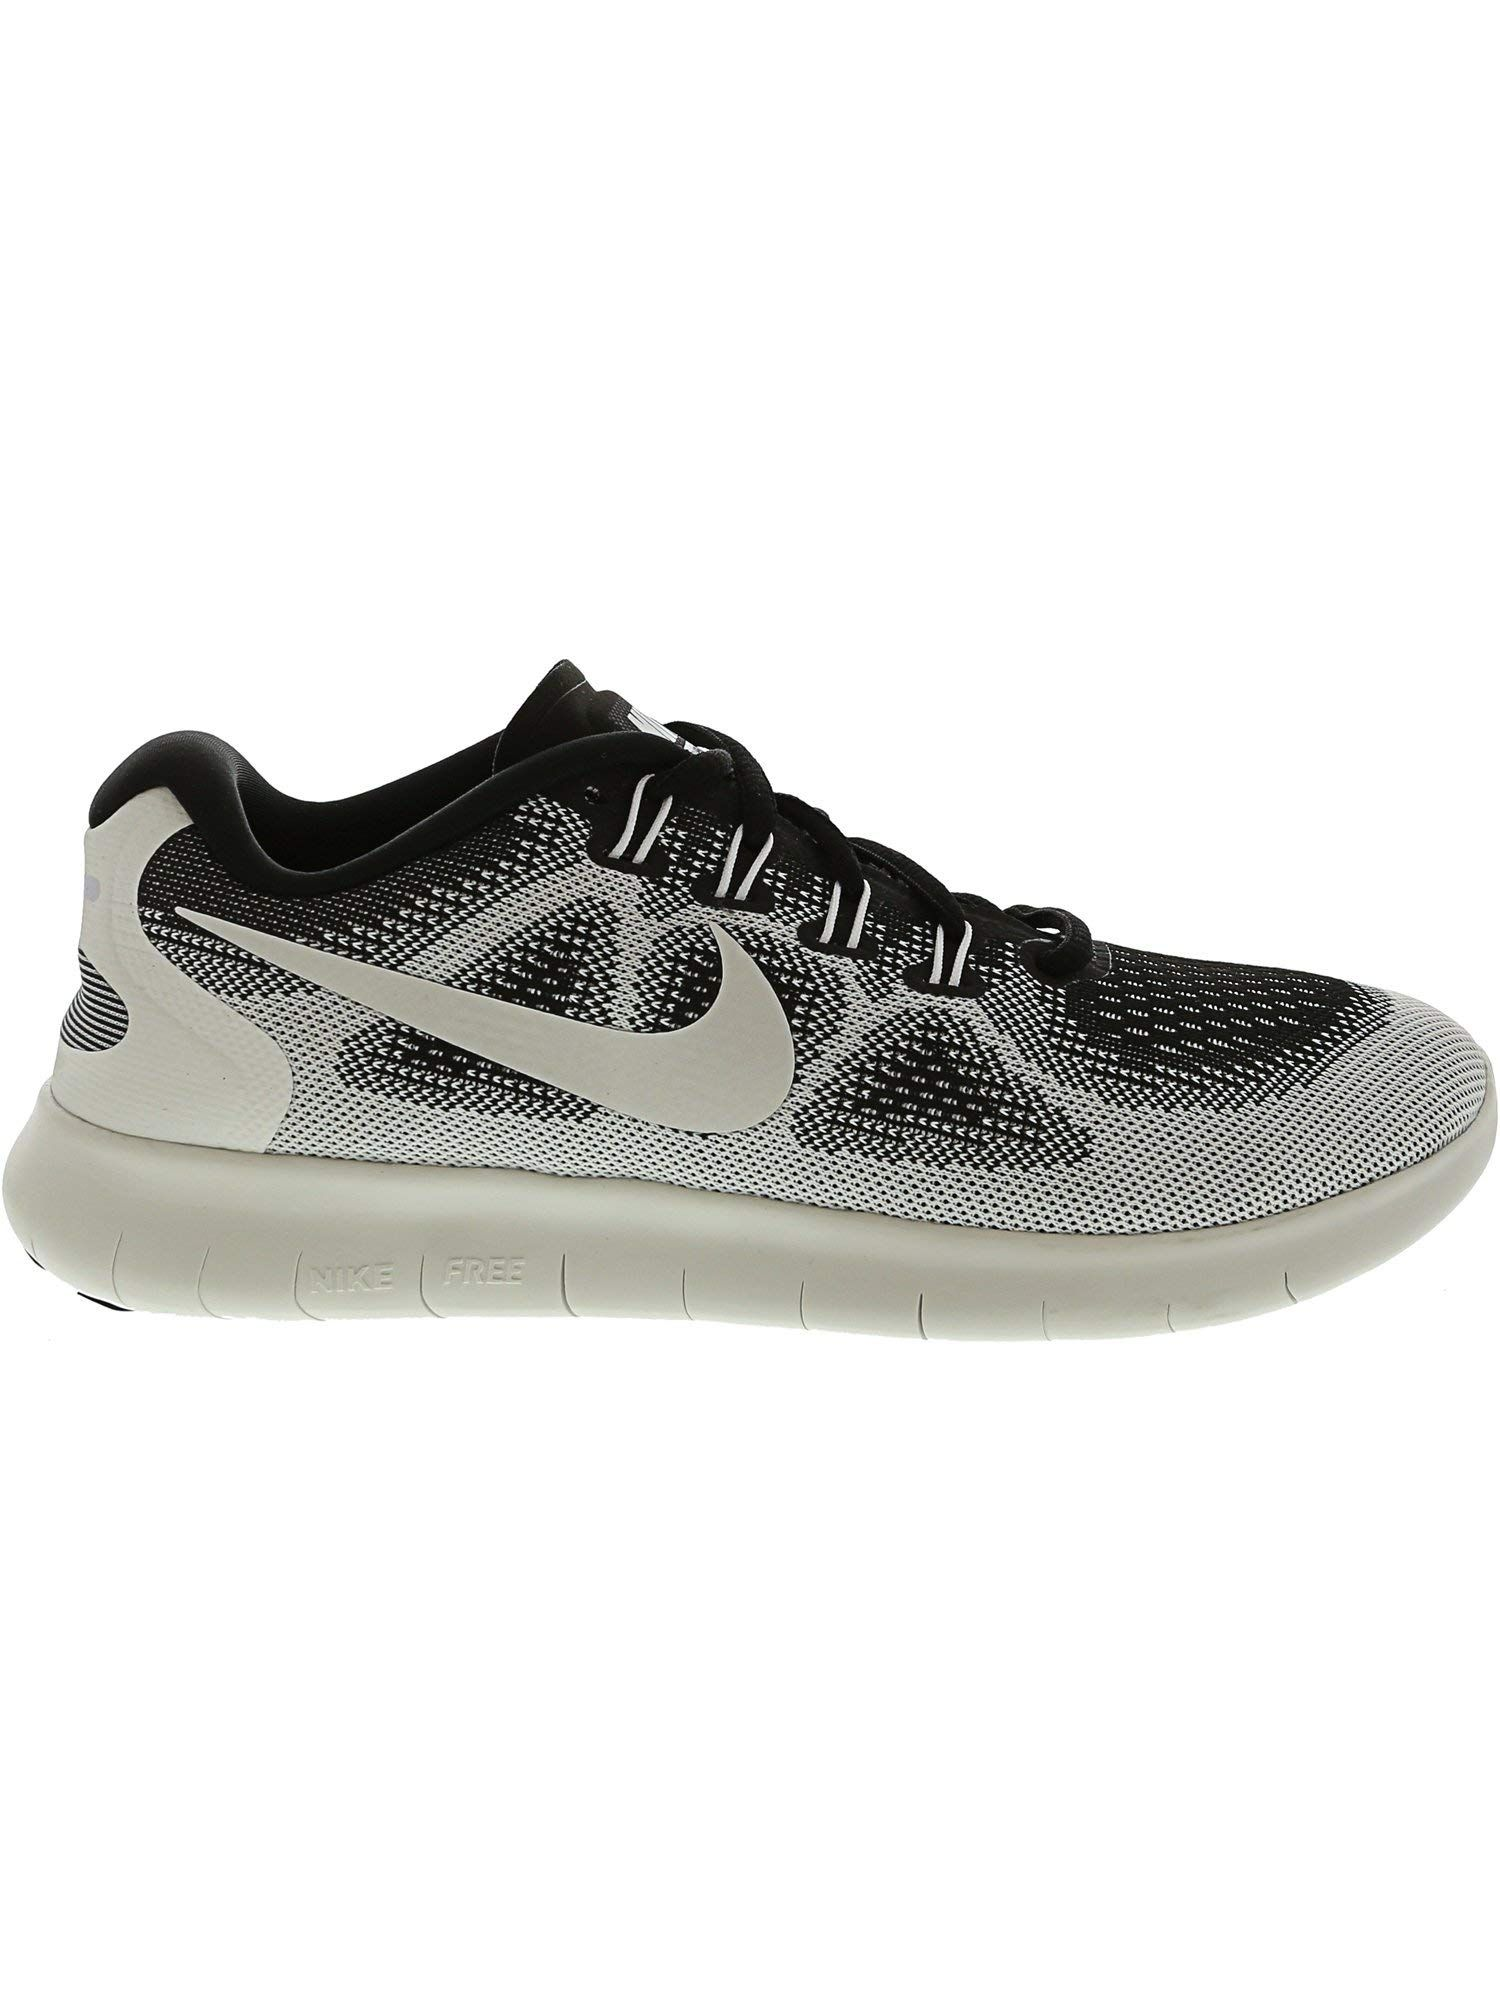 2cb9f1b995a3 Nike Womens Free RN 2017 LE LowTop Lightweight Running Shoes B W 8 Medium  BM     Details can be found by clicking on the image-affiliate link.